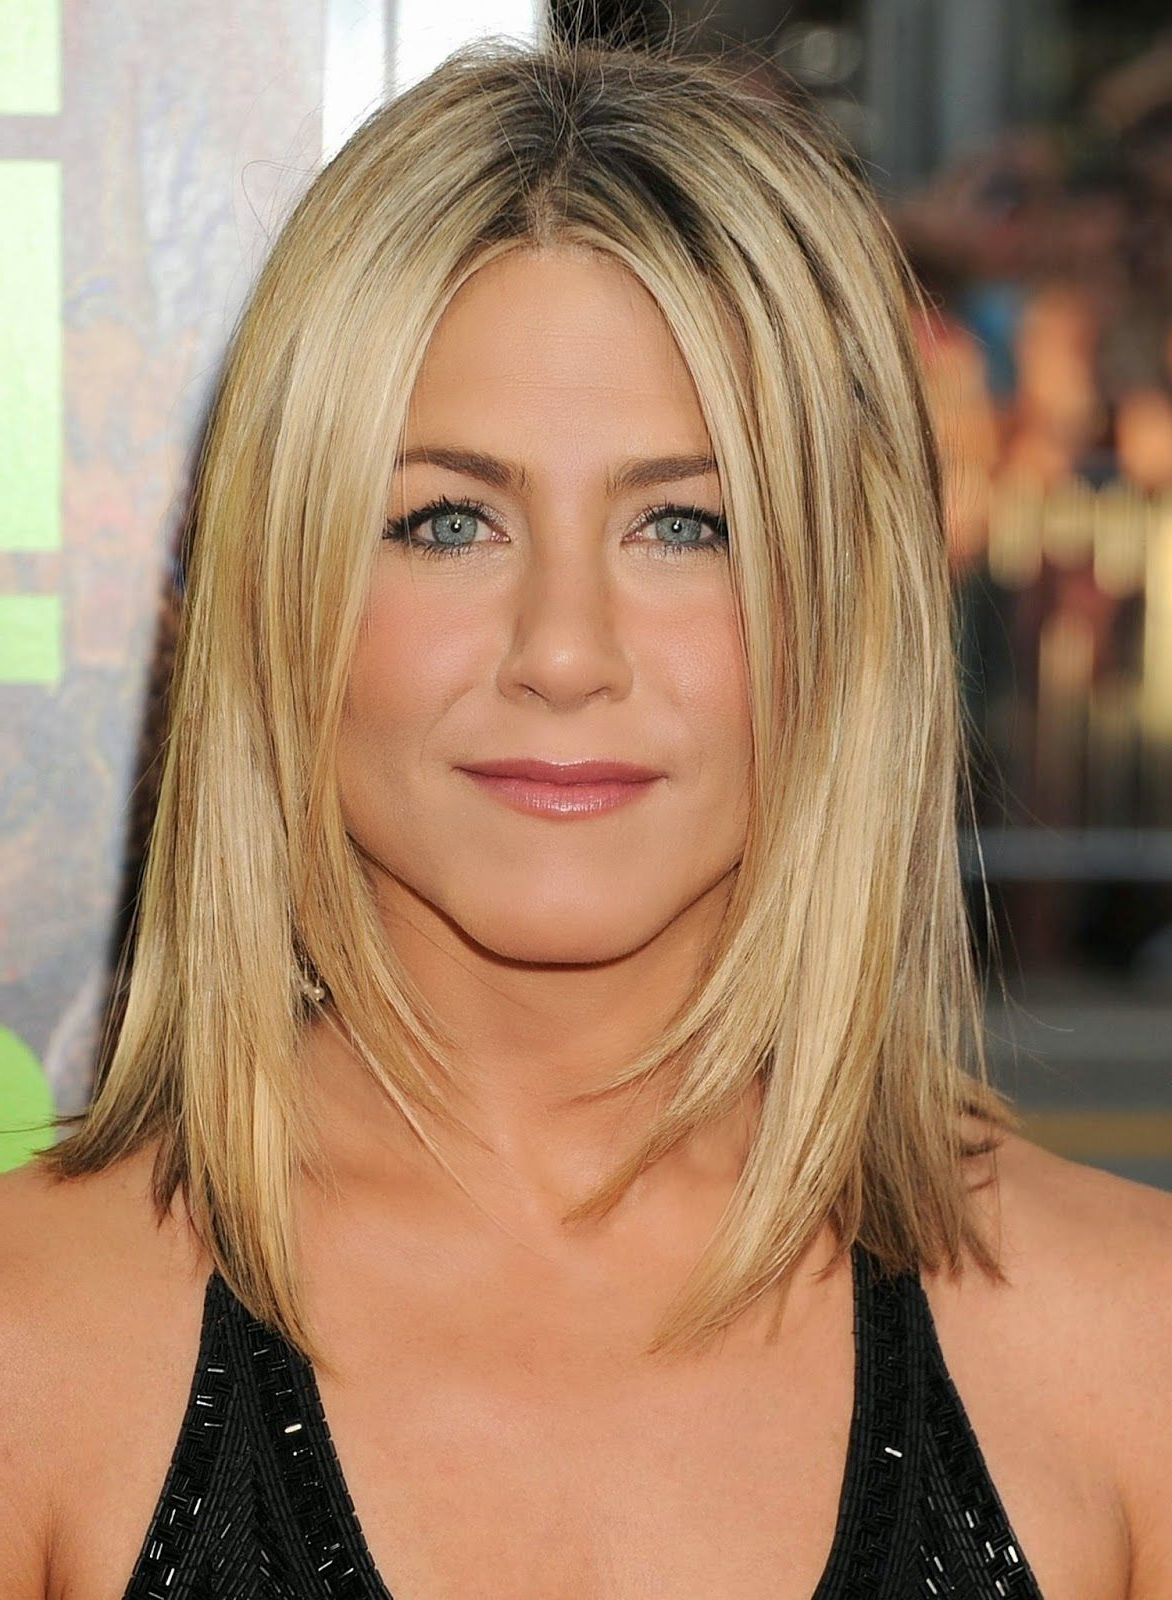 Image Result For Haircut For Thin Straight Hair (View 11 of 20)